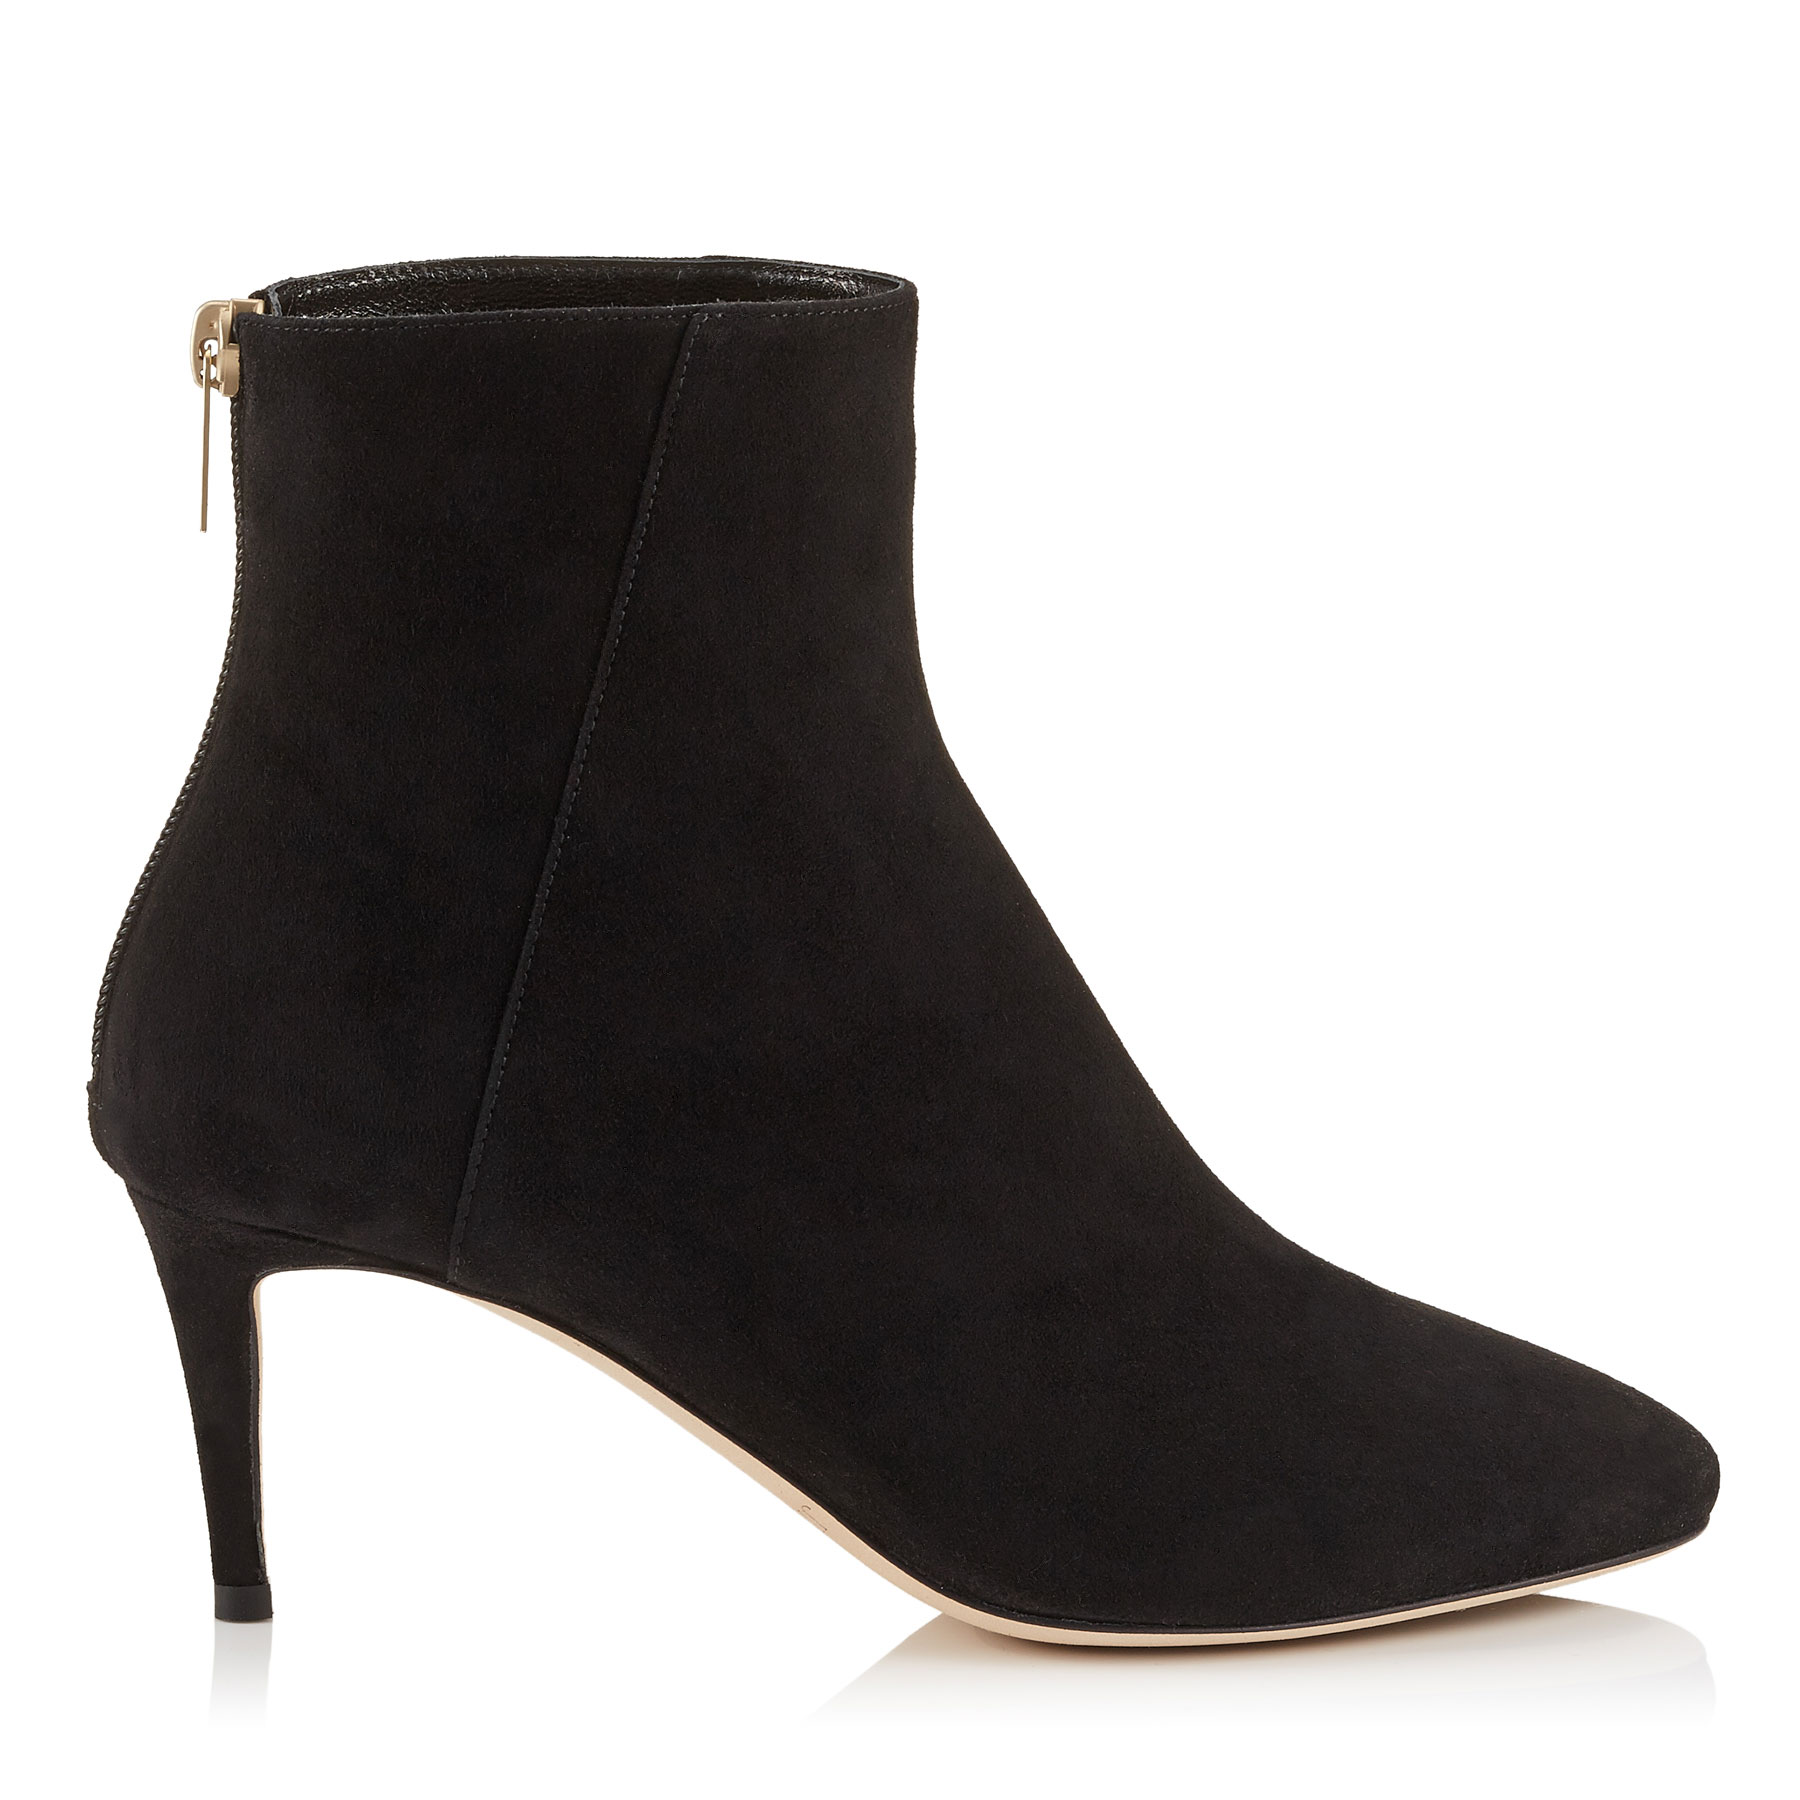 DUKE 65 Black Suede Ankle Boots by Jimmy Choo